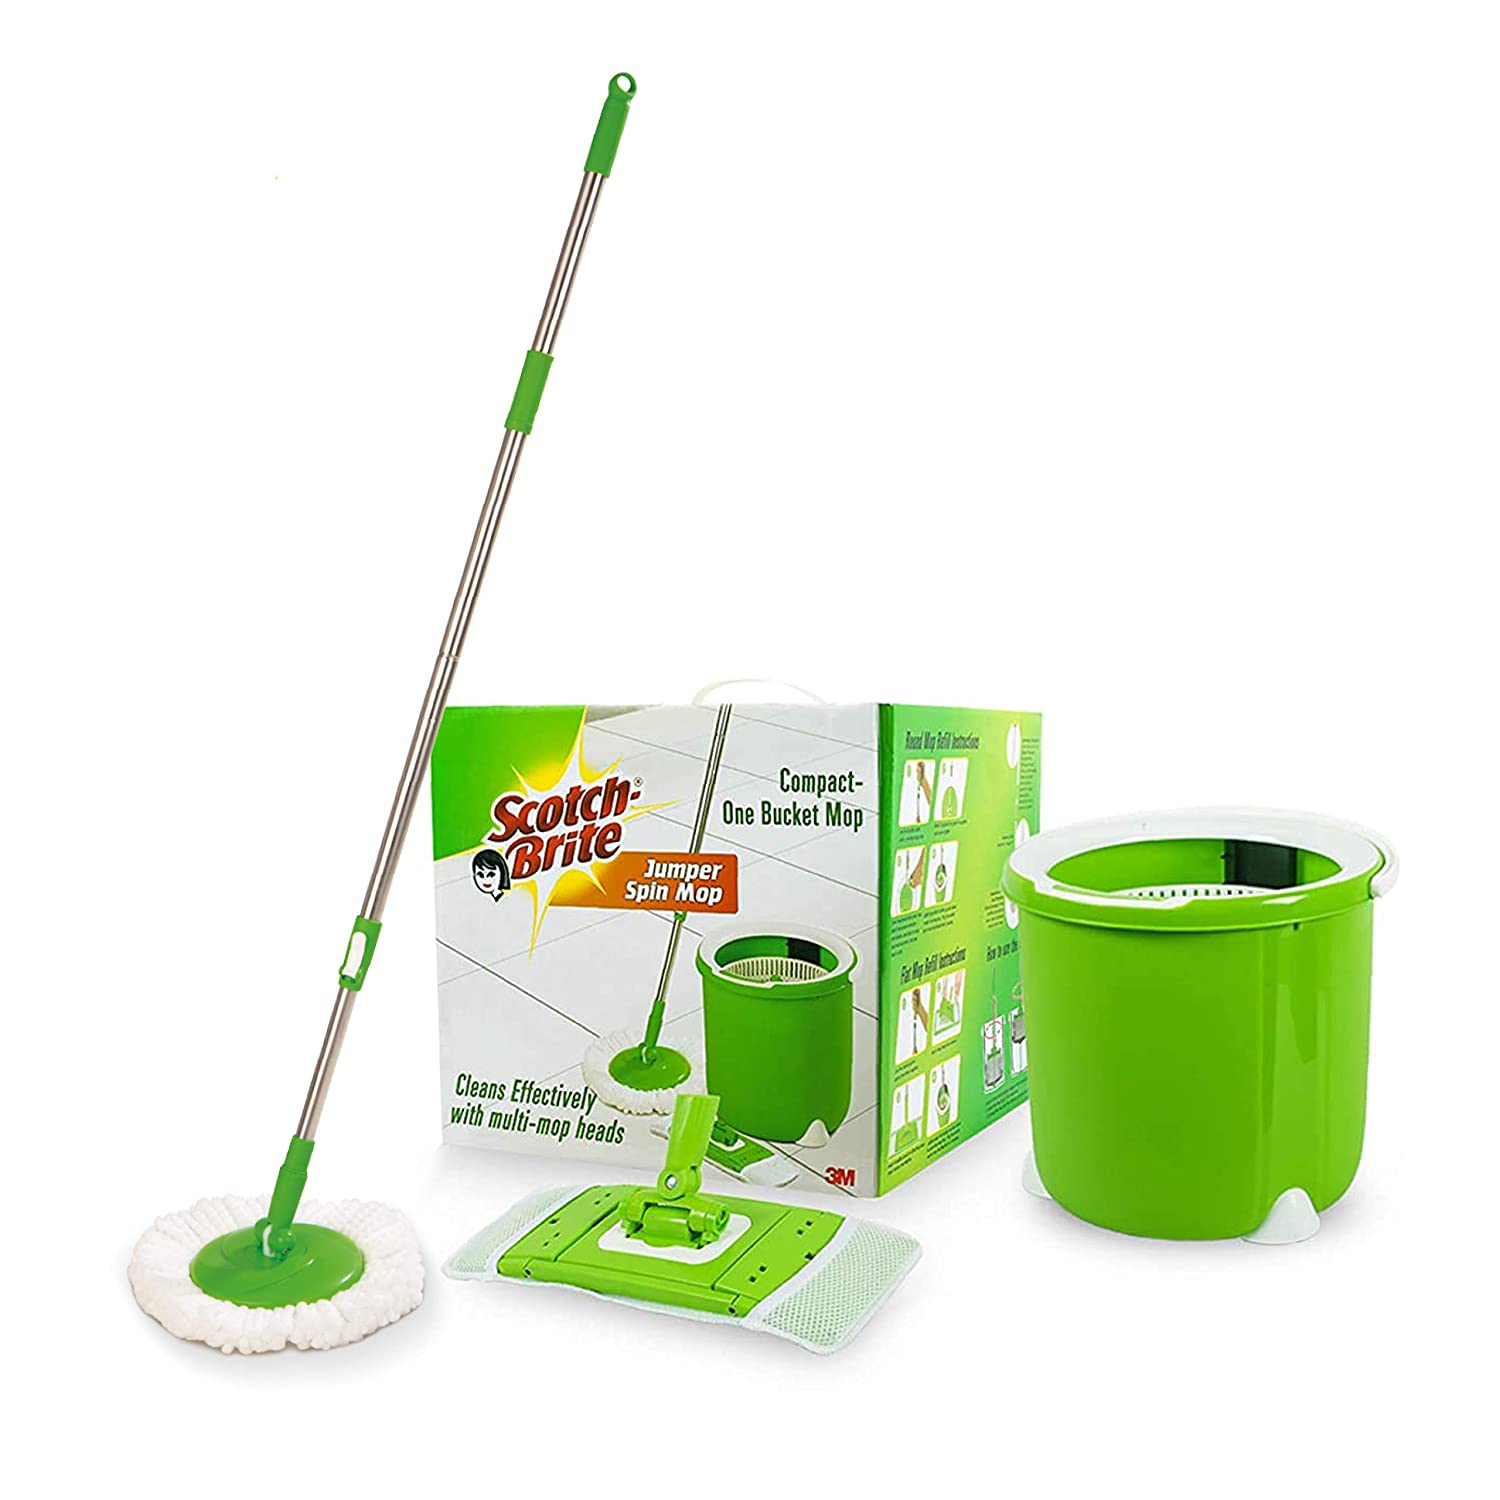 Scotch-Brite Jumper Spin Floor Cleaning Mop